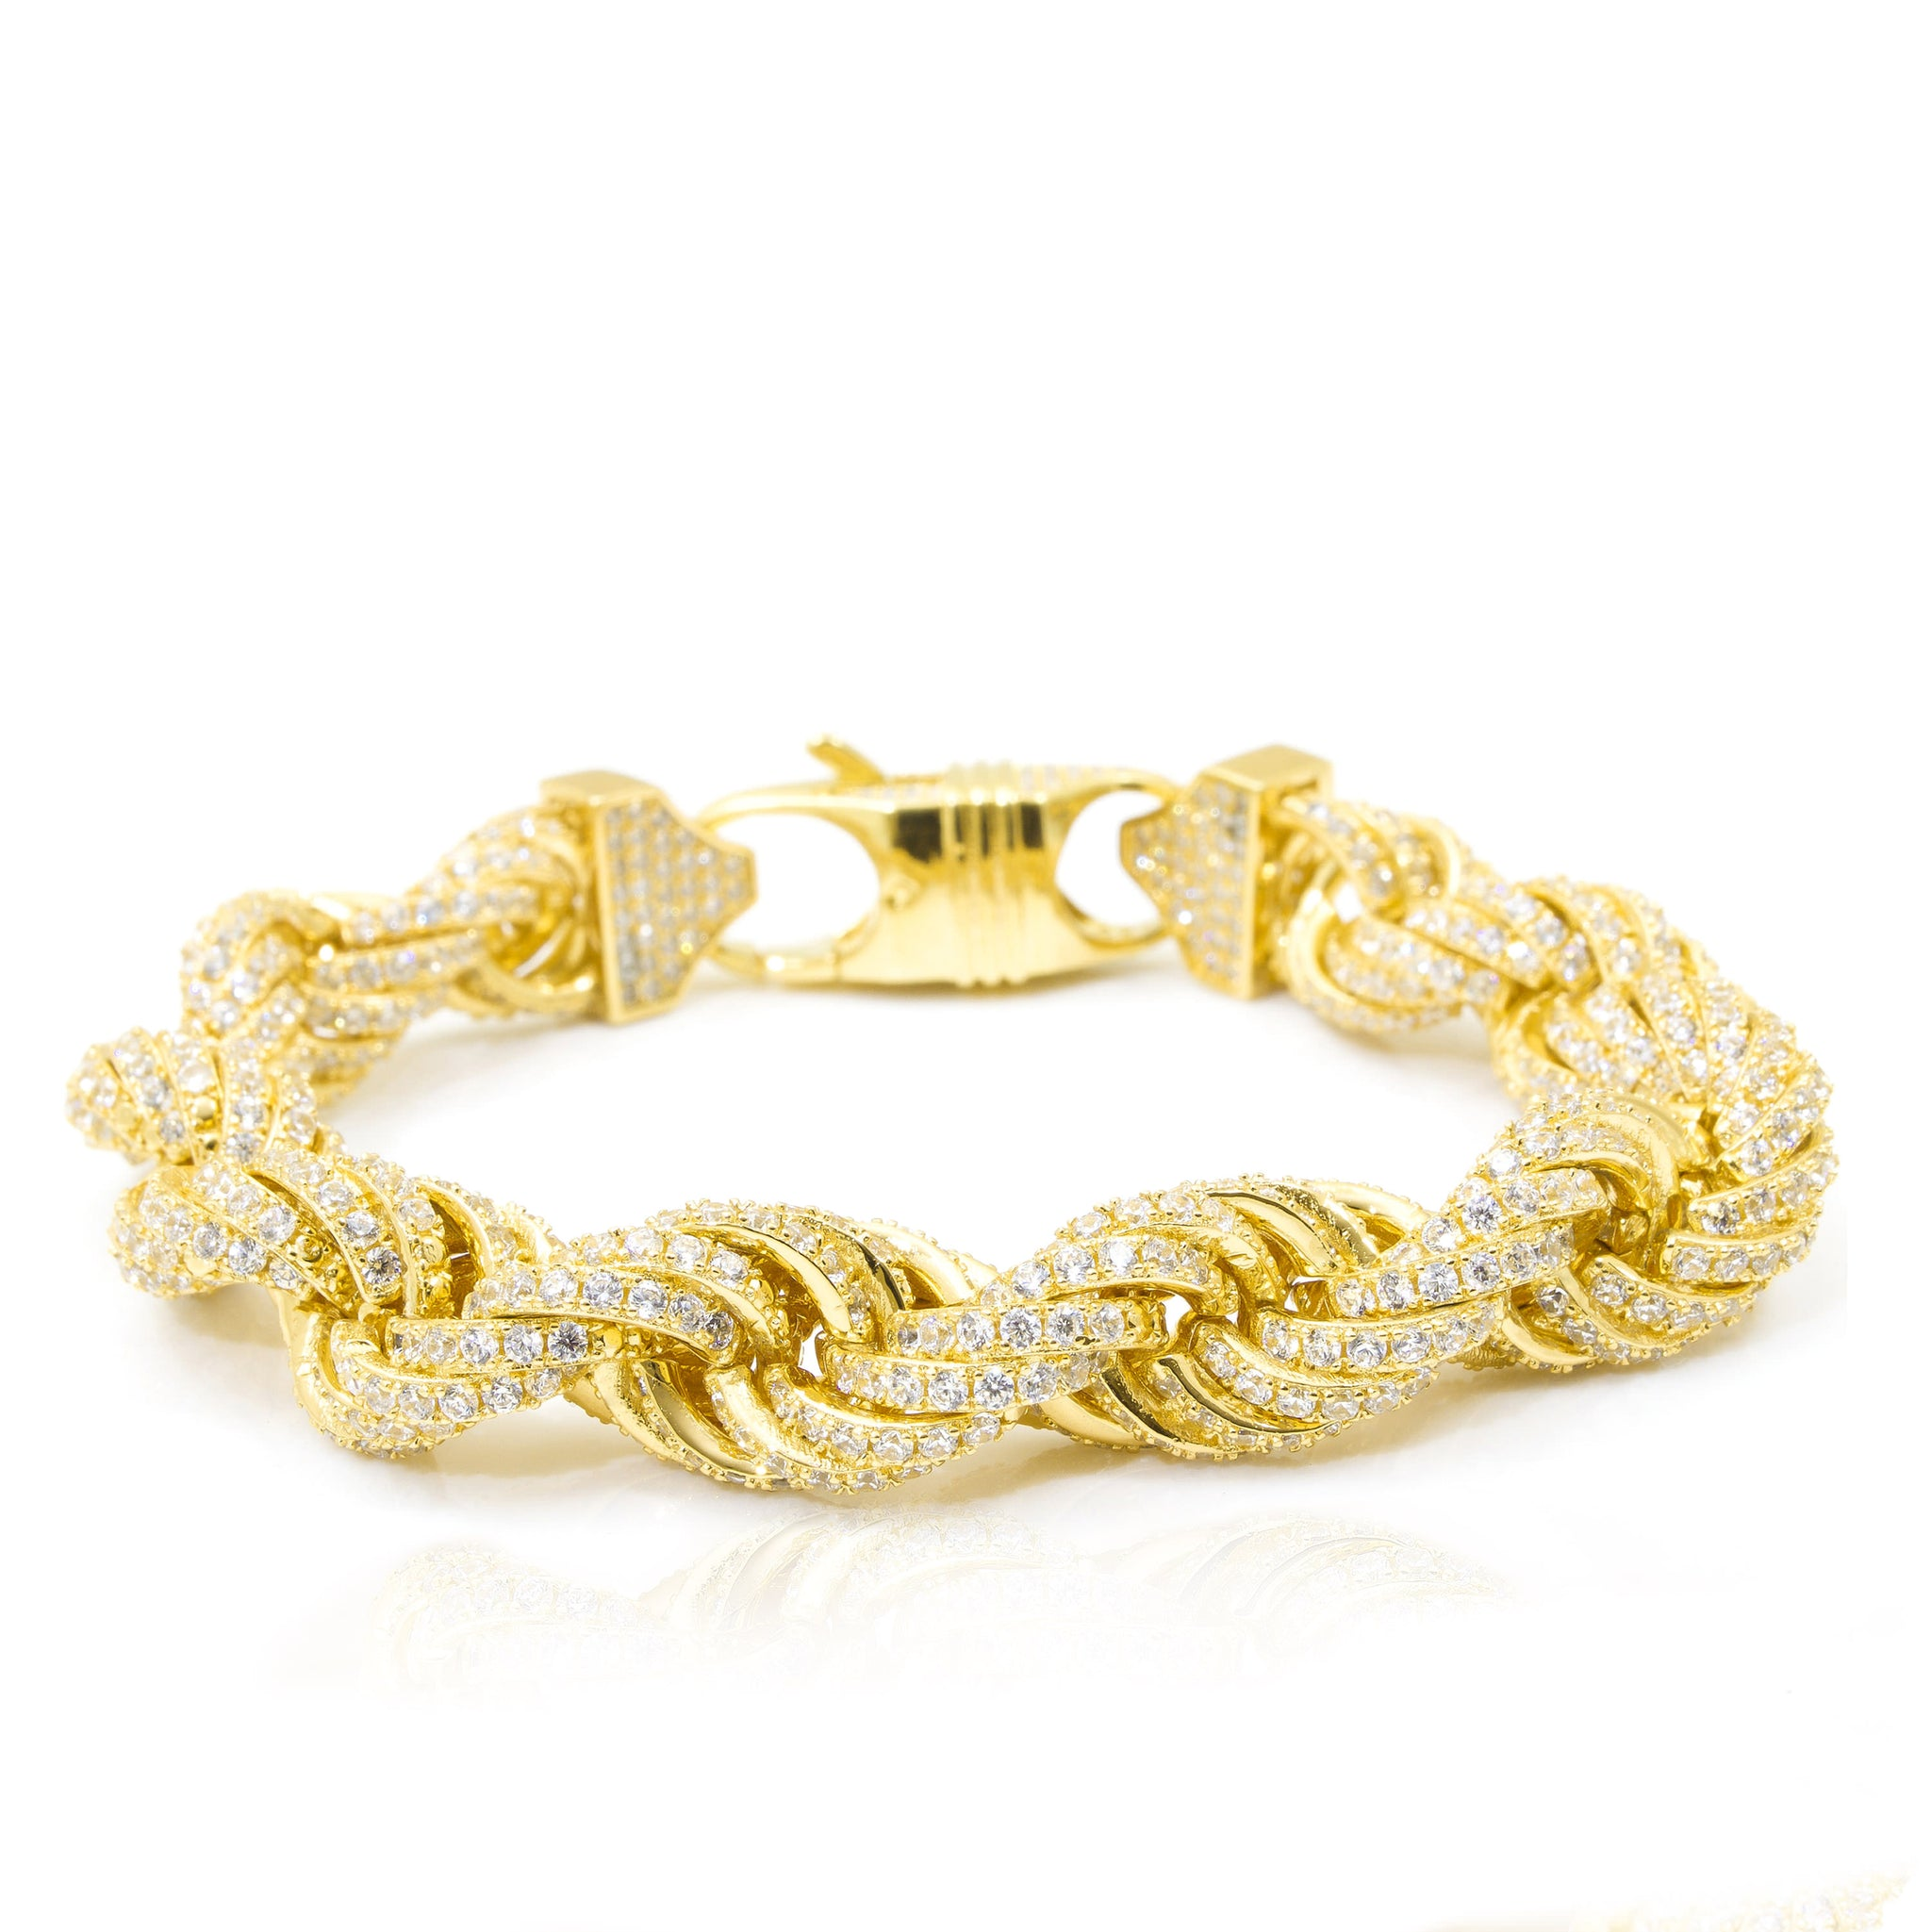 hummingbird bangle inch native product traditional white healing bangles gold silver bracelet